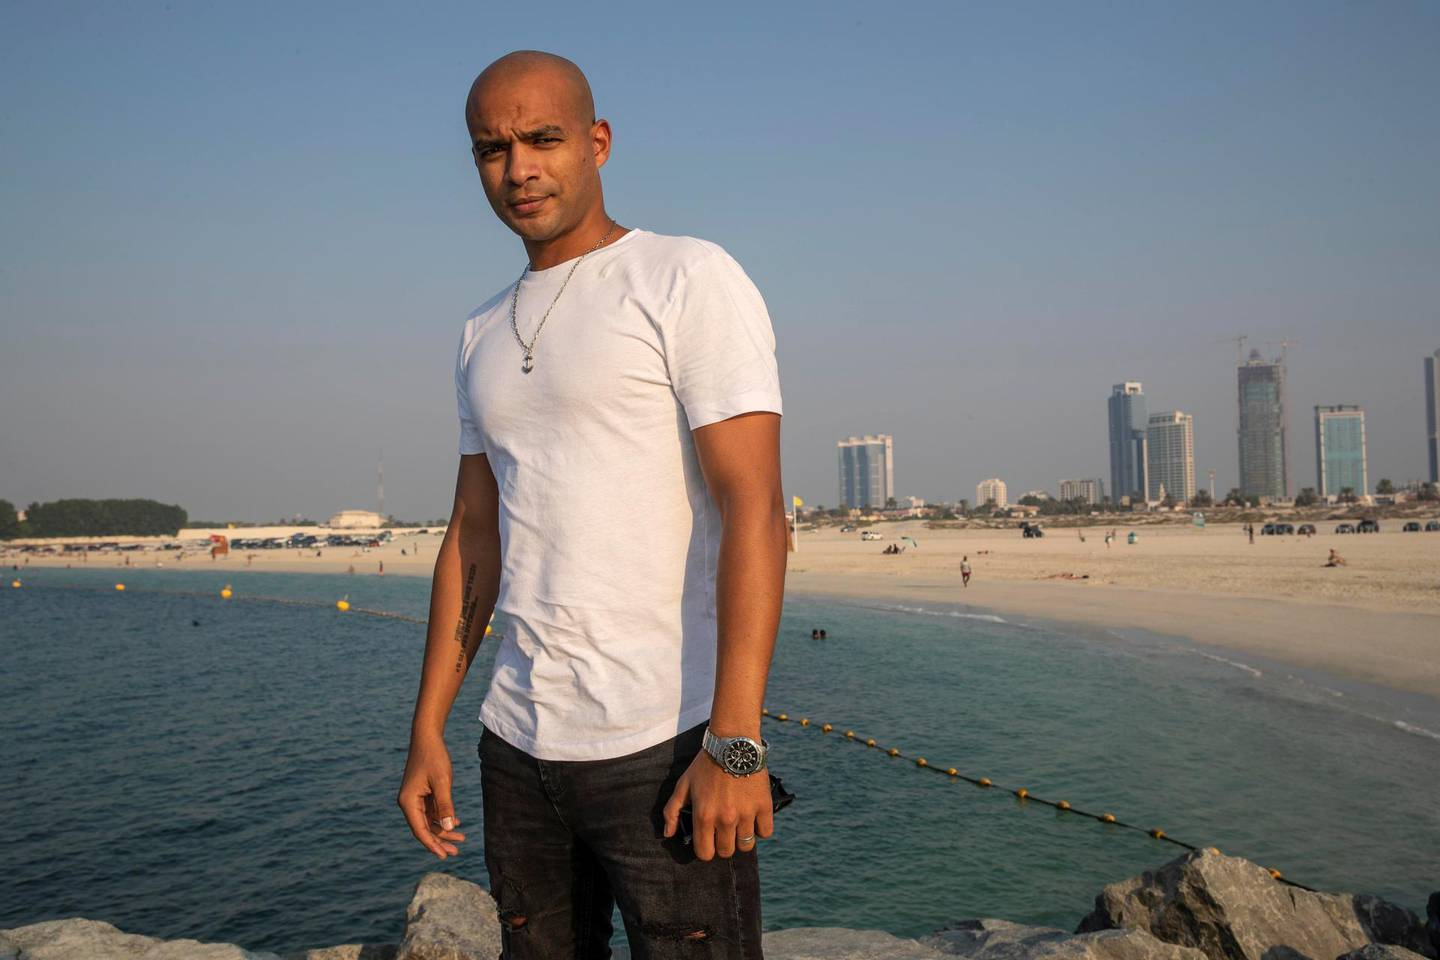 DUBAI UNITED ARAB EMIRATES. 02 NOVEMBER 2020. Shehab Allam, Egyptian champion who has mono-swum the whole of the 25km of Dubai Canal, a world first. He talks about the difficulty of continuing in the sport when it doesn't pay. At 29, he has not entered any competitions since he was 17, as he had to work to earn money instead. (Photo: Antonie Robertson/The National) Journalist: Suzanne Locke. Section: National.